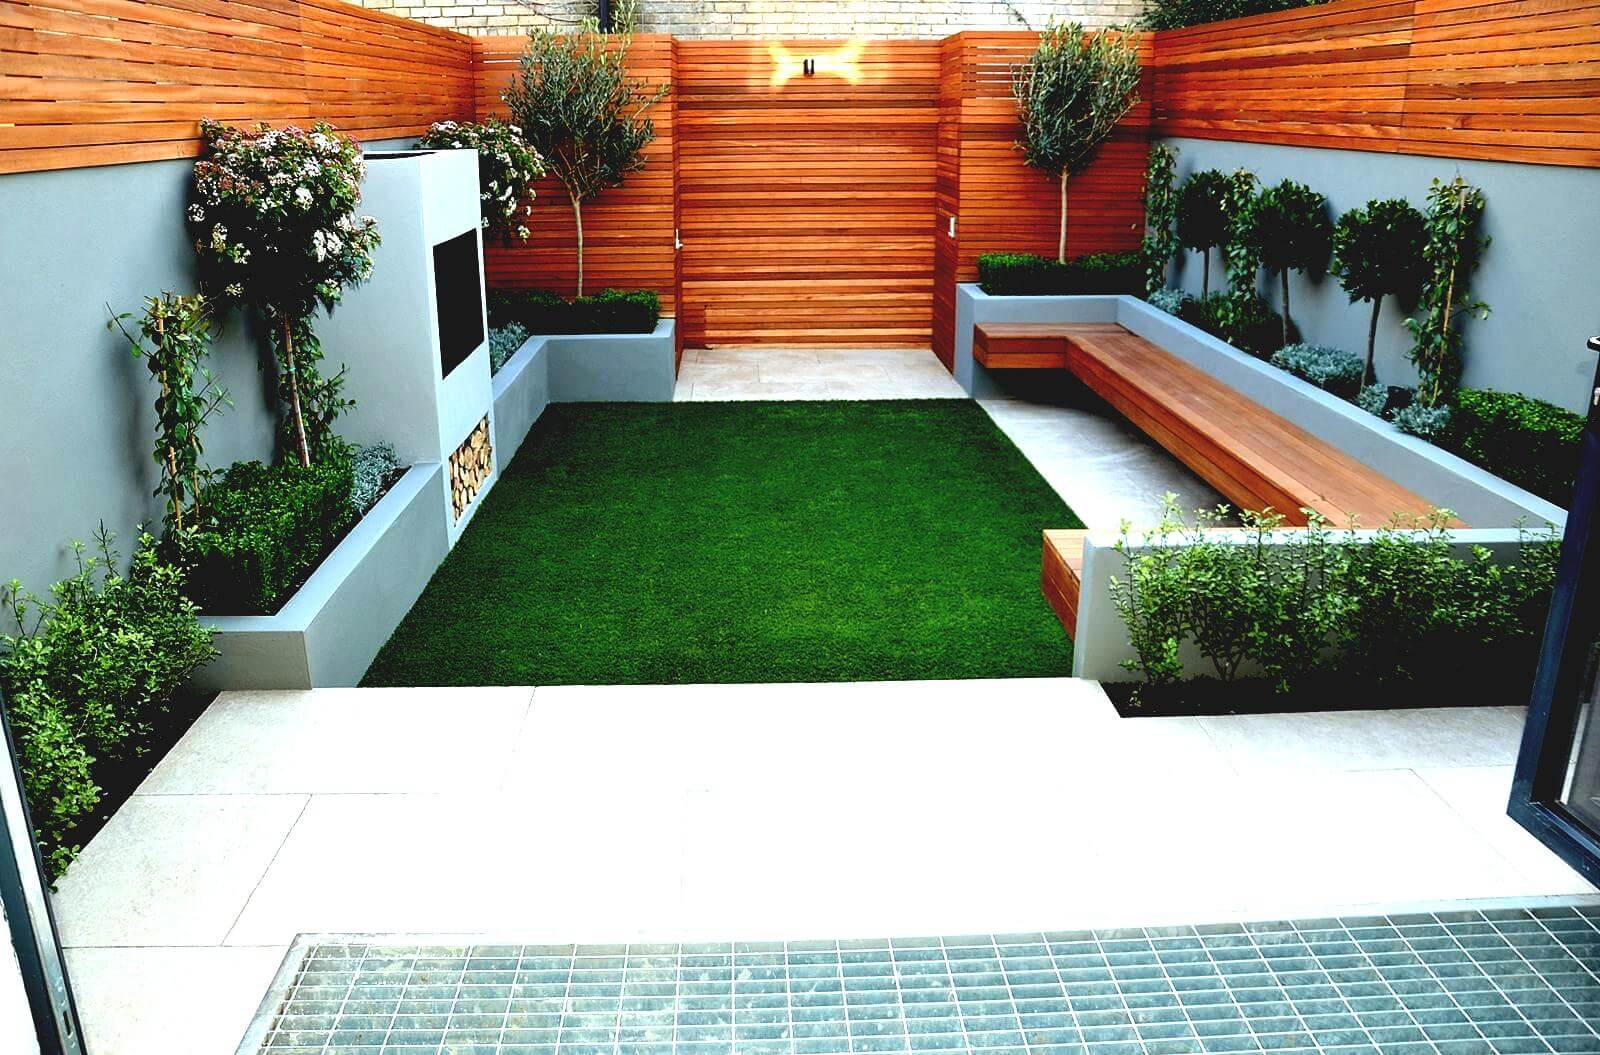 50 Best Front Garden Design Ideas in UK - Home Decor Ideas UK on Landscape Garden Designs For Small Gardens id=11843